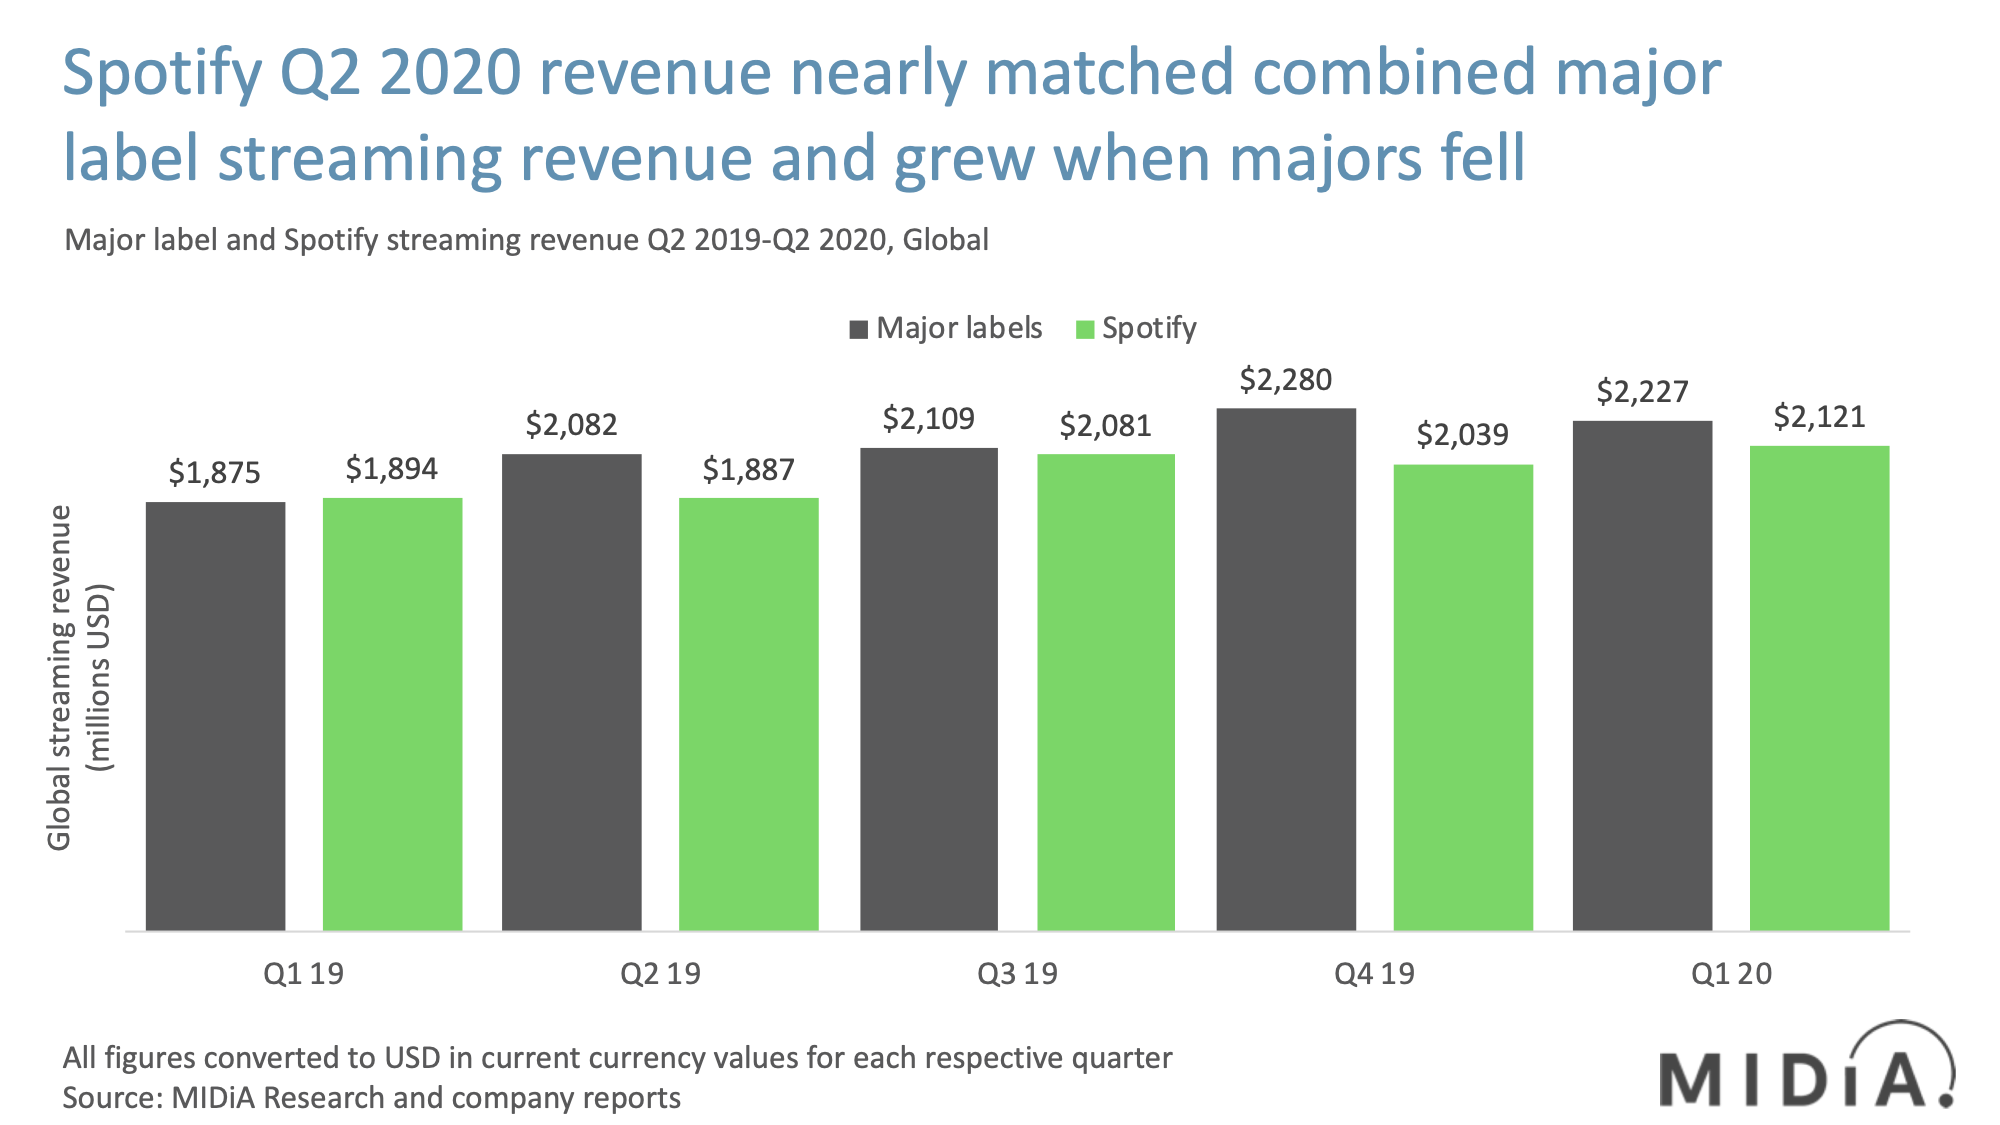 spotify revenues compared to major label revenues q2 2020